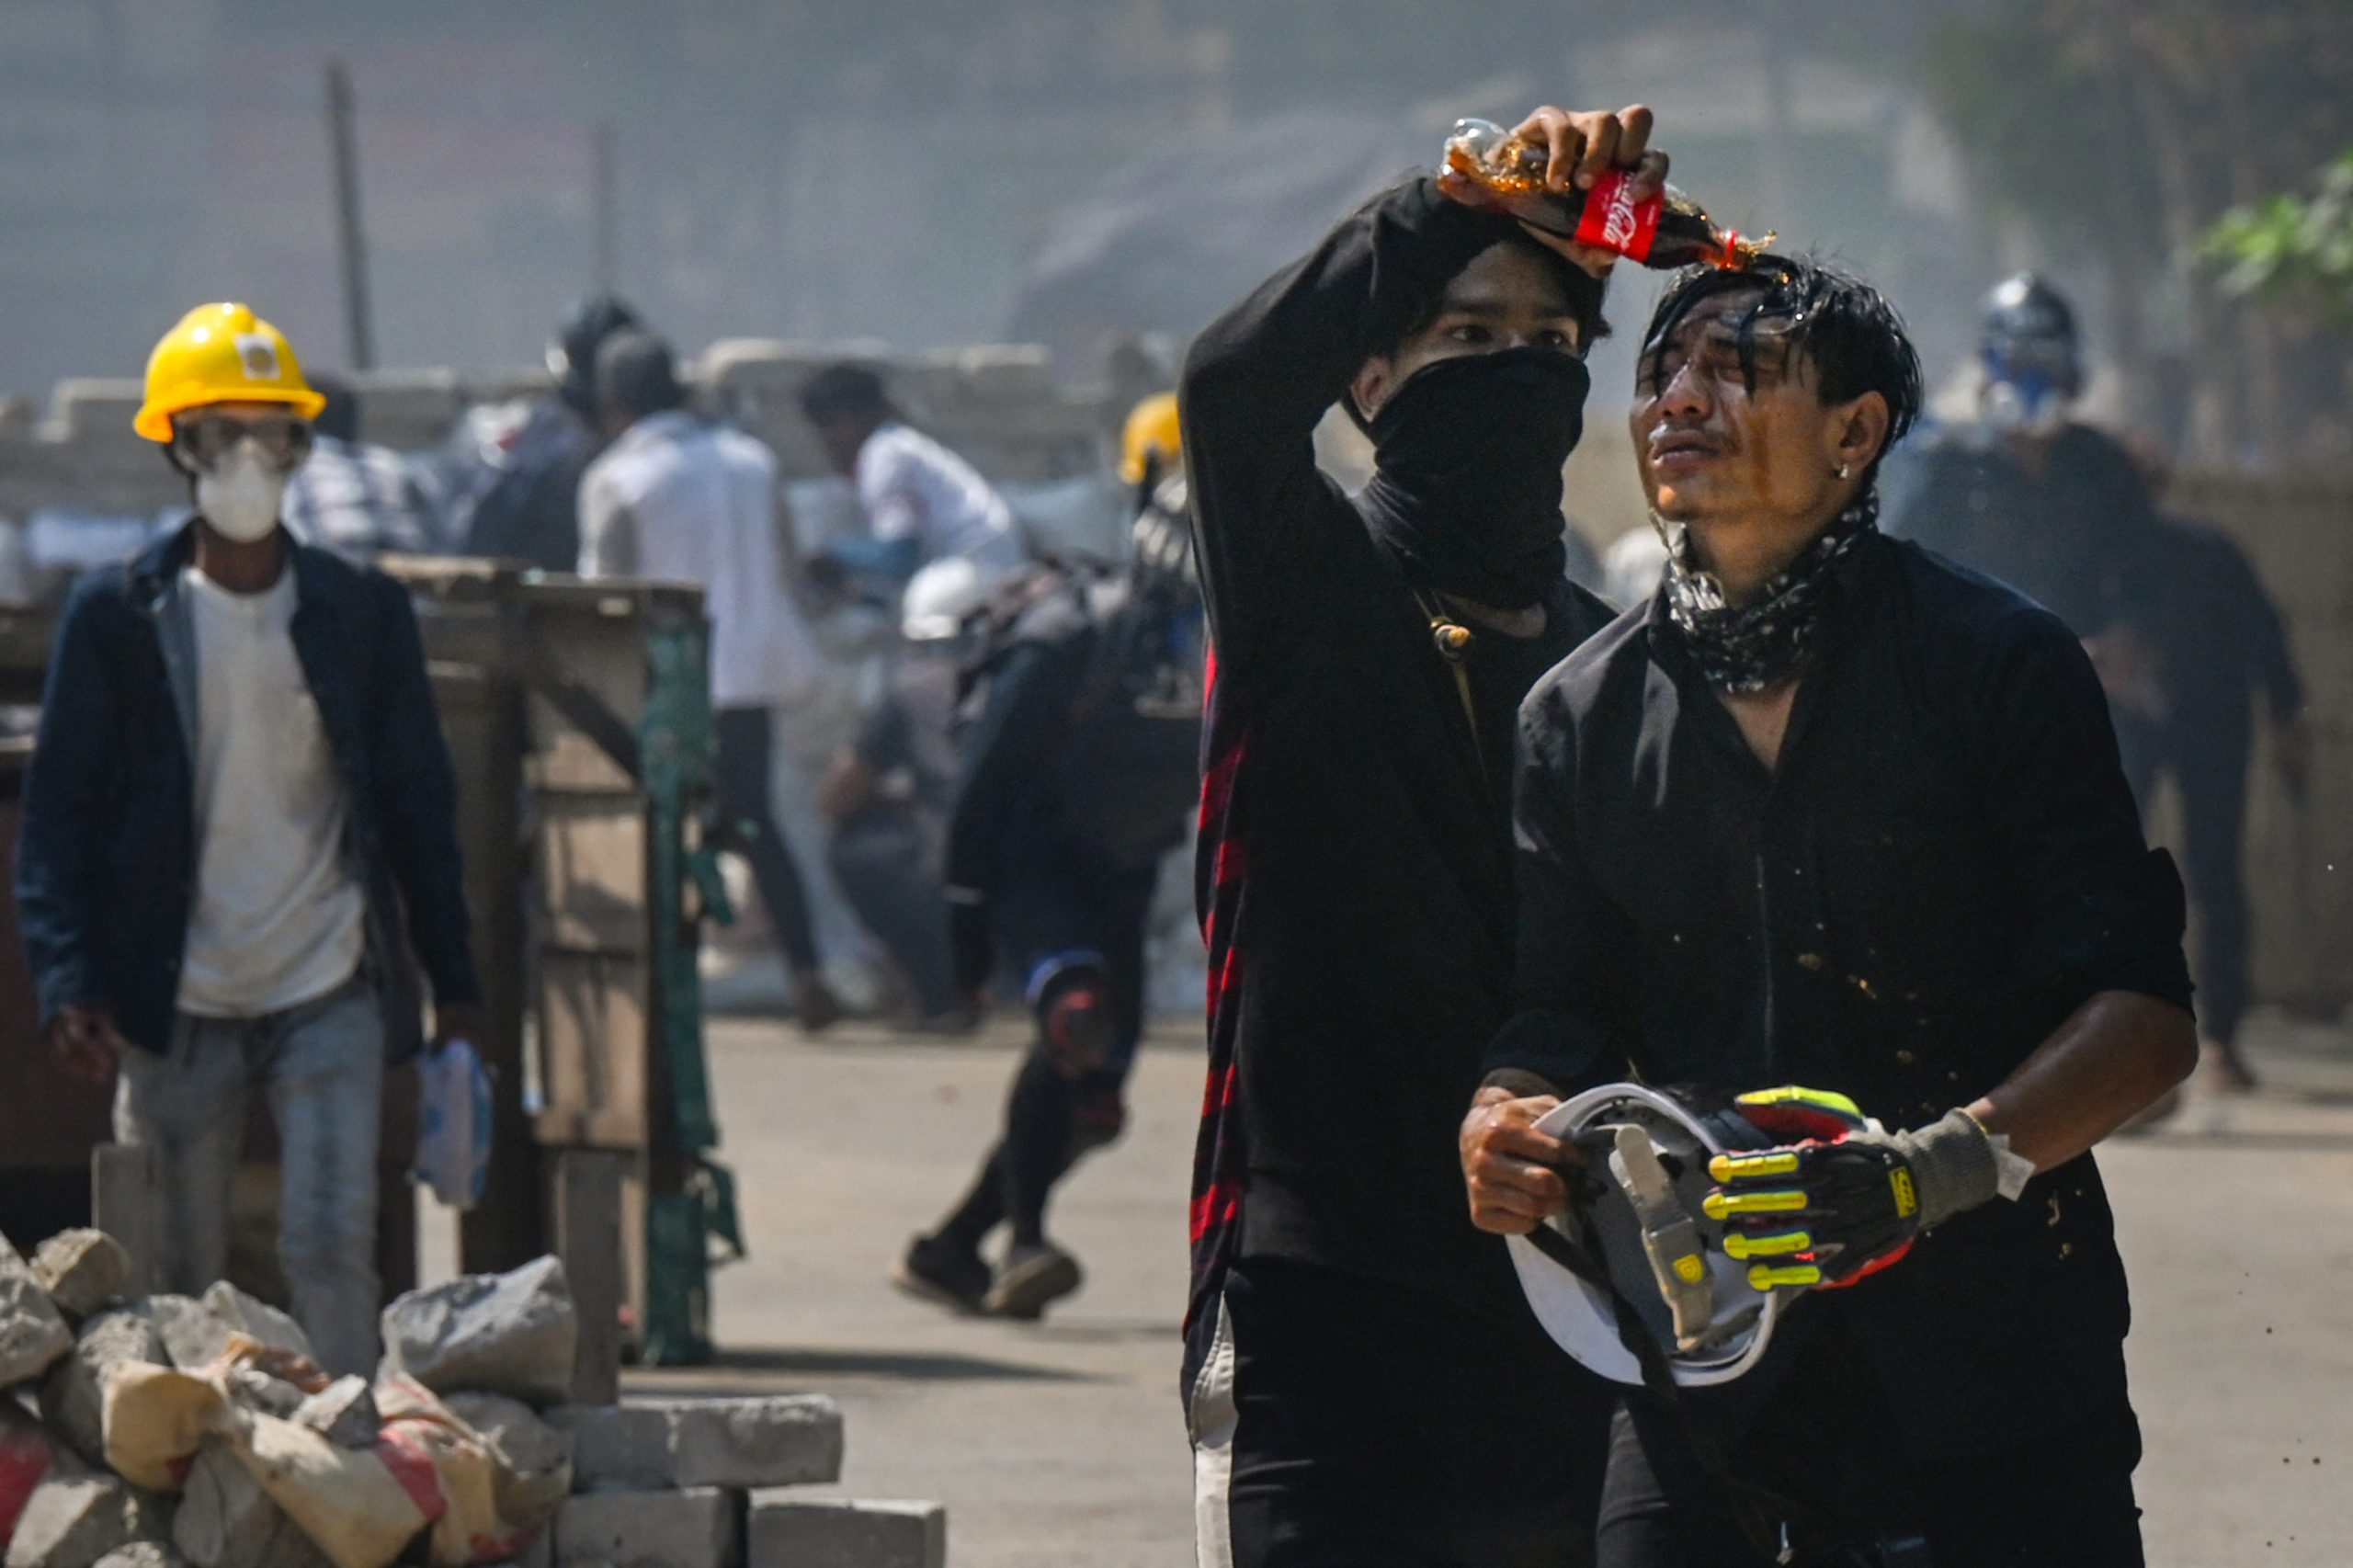 TOPSHOT - A protester pours Coca-Cola on the face of a comrade to diminish the effects of tear gas during a crackdown by security forces on a demonstration against the military coup in Yangon's Thaketa township on March 19, 2021. (Photo by STR / AFP) (Photo by STR/AFP via Getty Images)